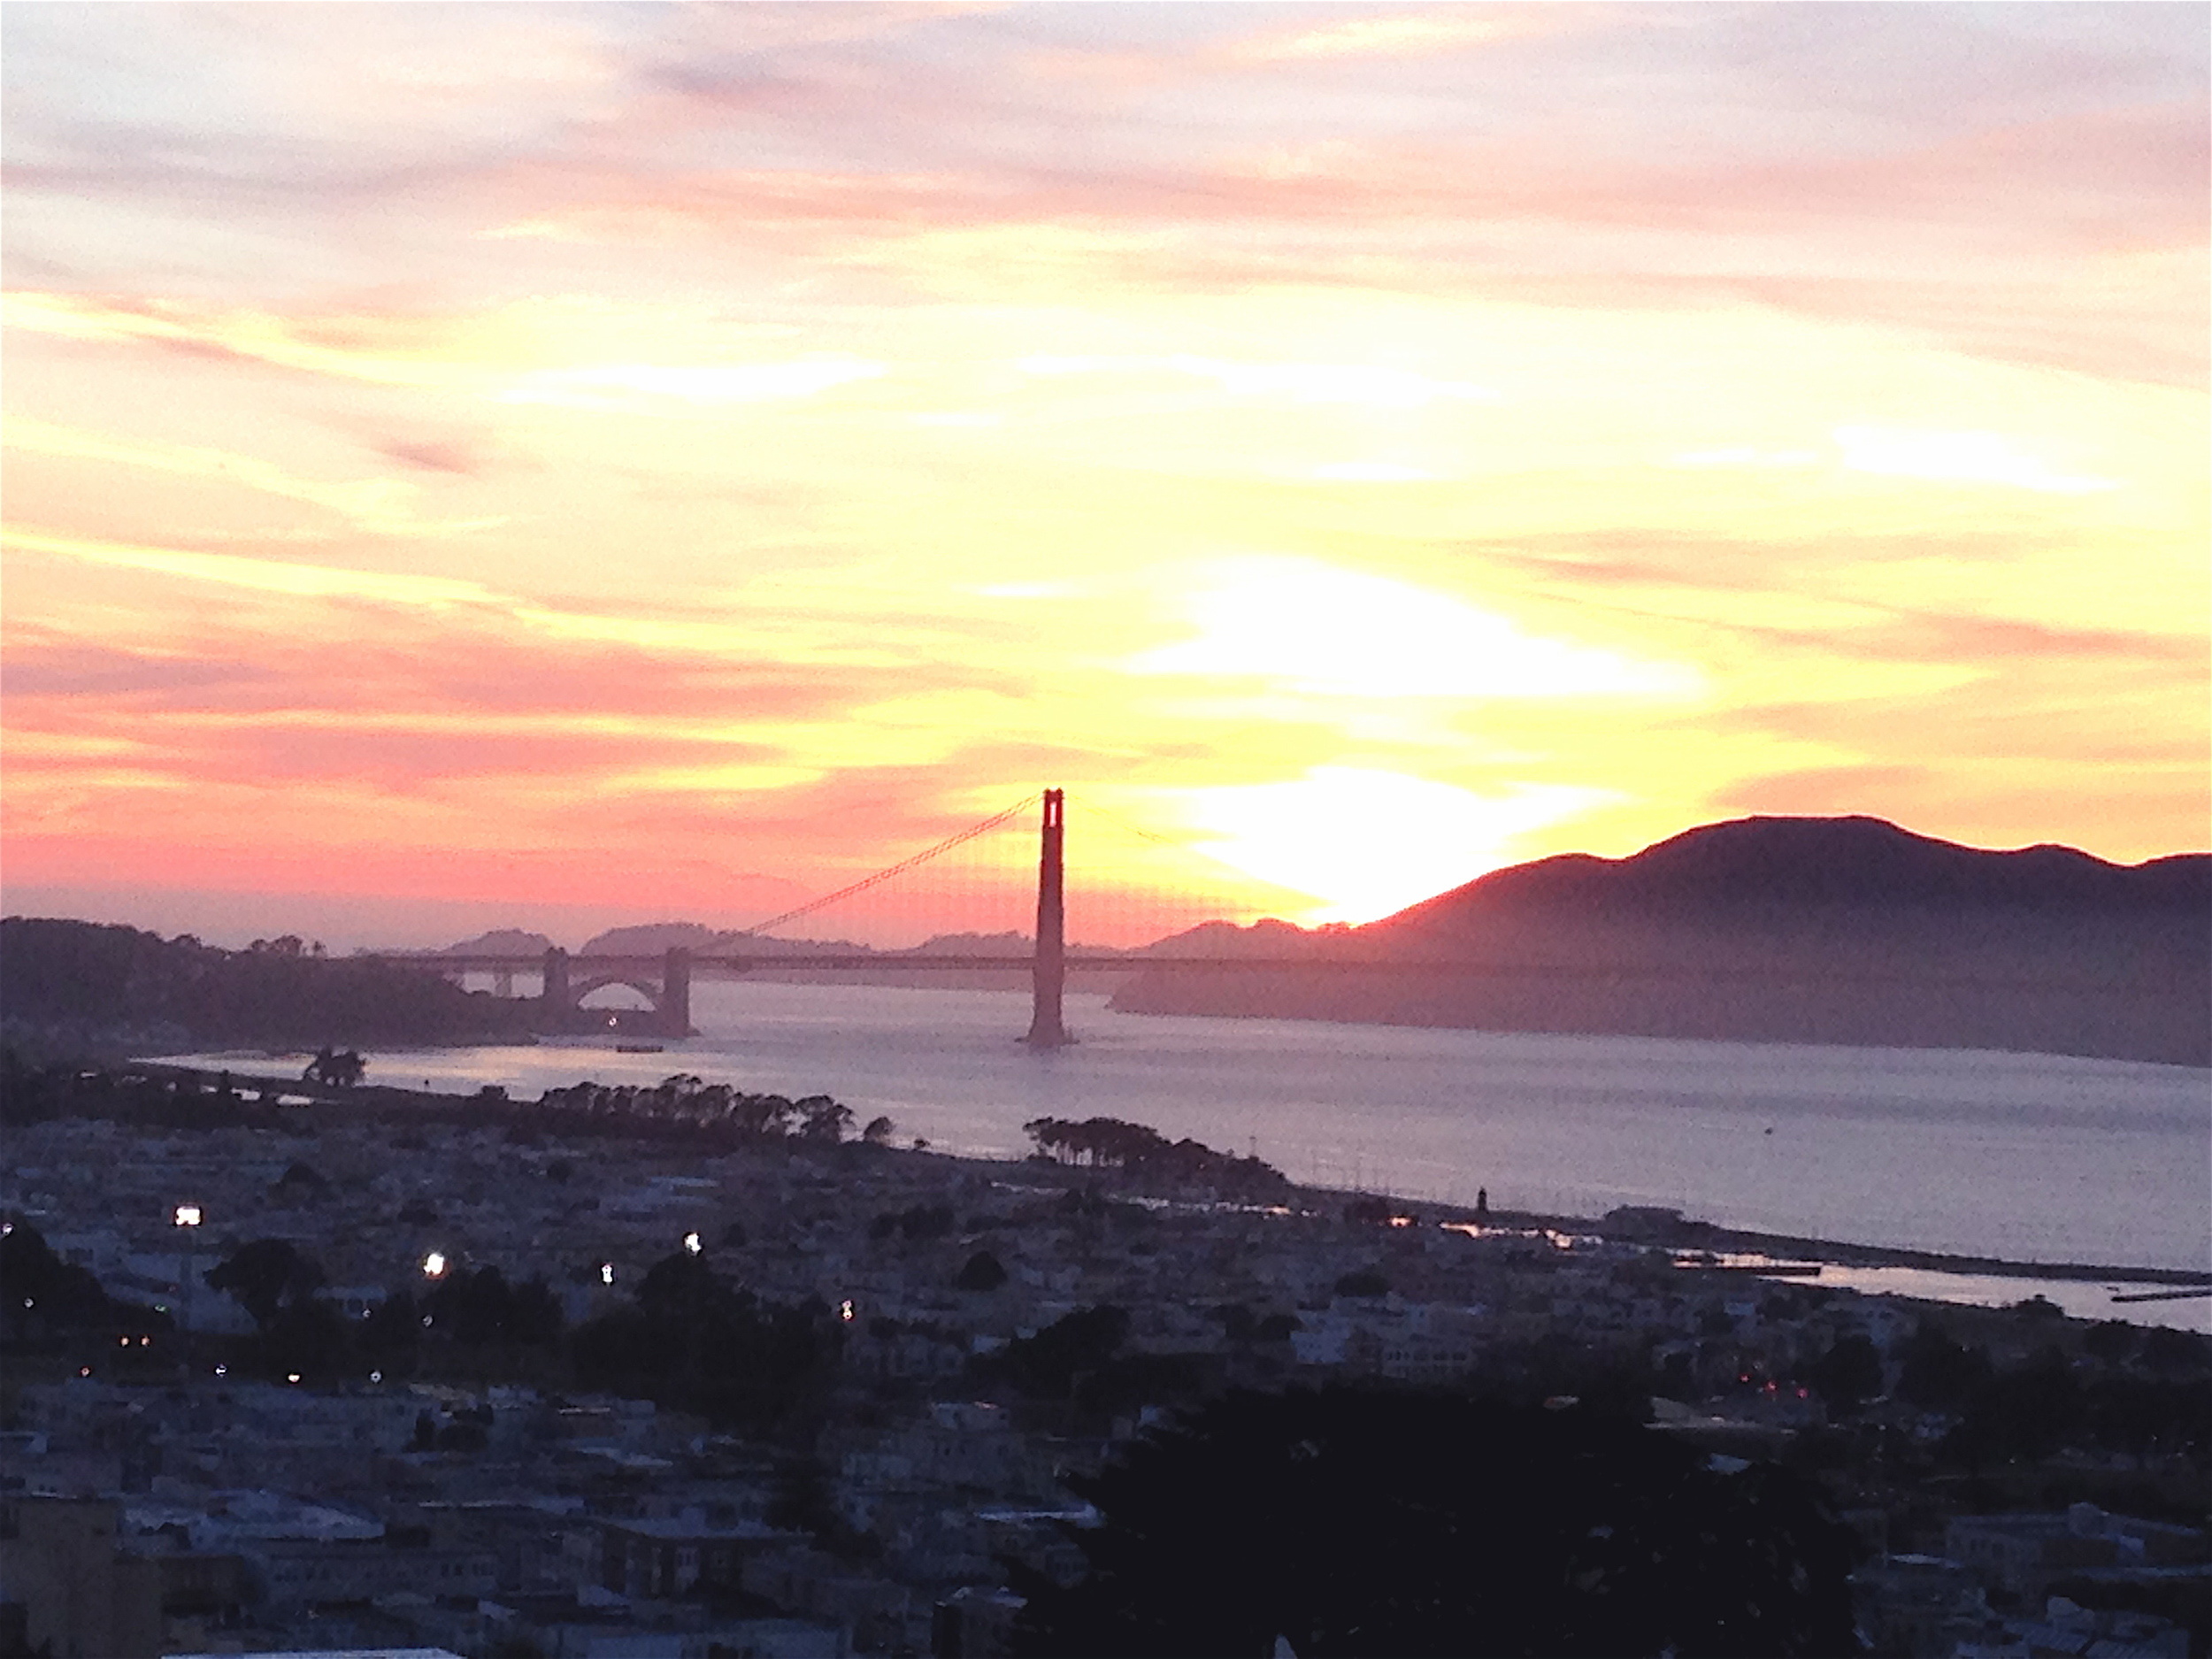 Sunset on San Francisco Bay. Photo: DelRae